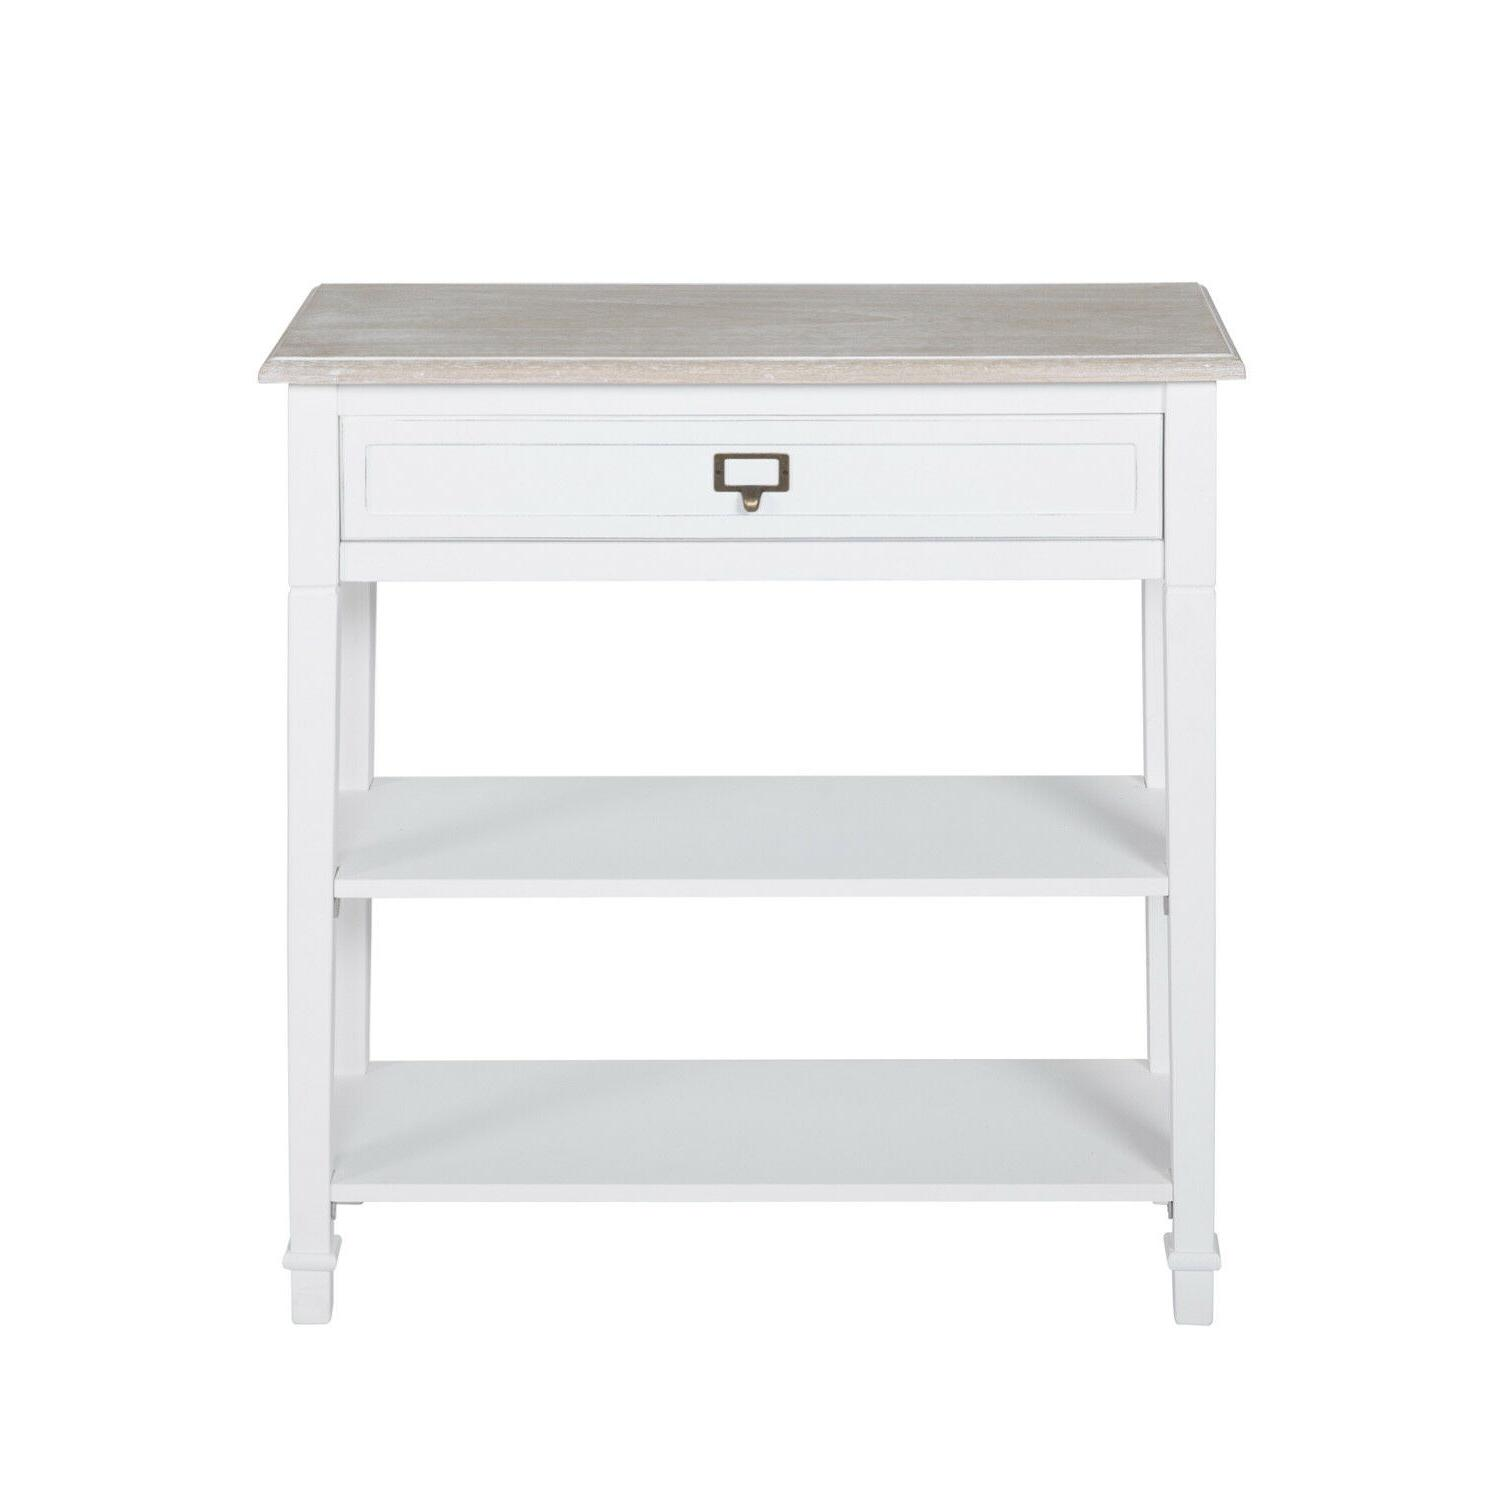 Console w/ Drawer and Tier Storage Entryway White